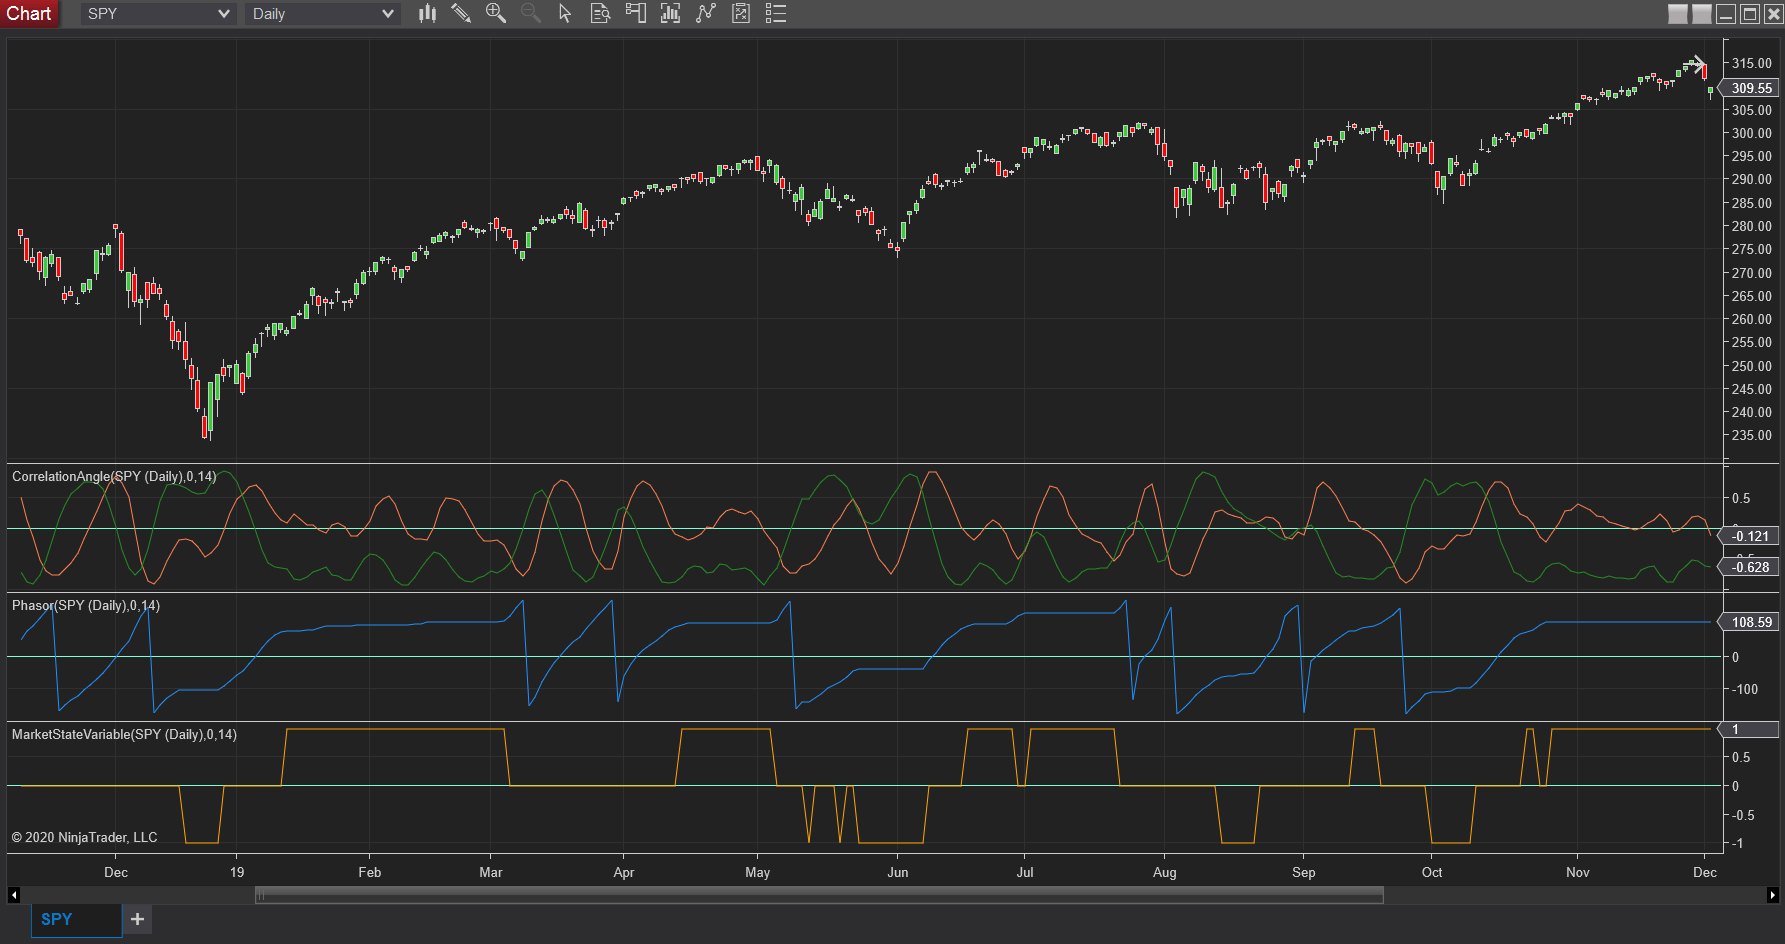 Correlation Angle Indicator, Phasor, and Market State Variable June 2020 S&C - NT8